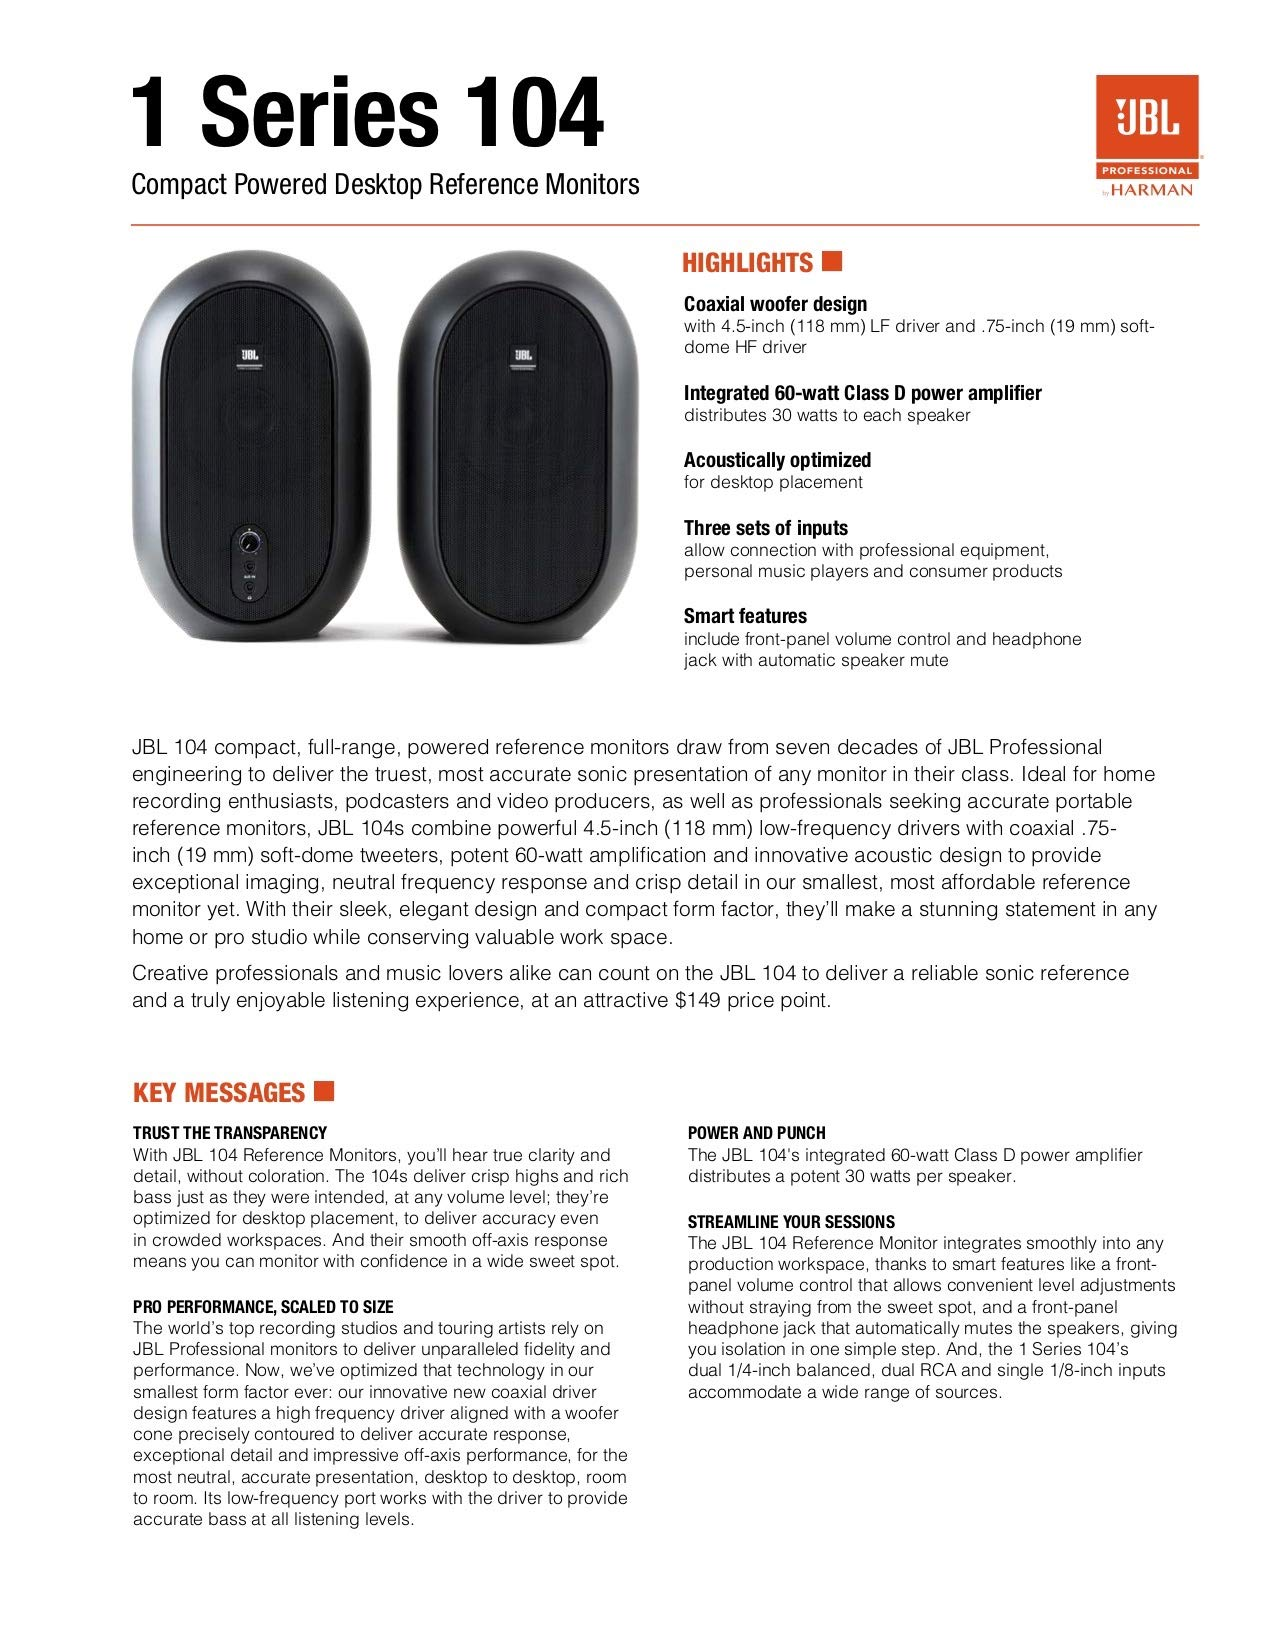 JBL Professional 1 Series, 104 Compact Powered Desktop Reference Monitors (sold as pair), Black (JBL104) by JBL Professional (Image #10)